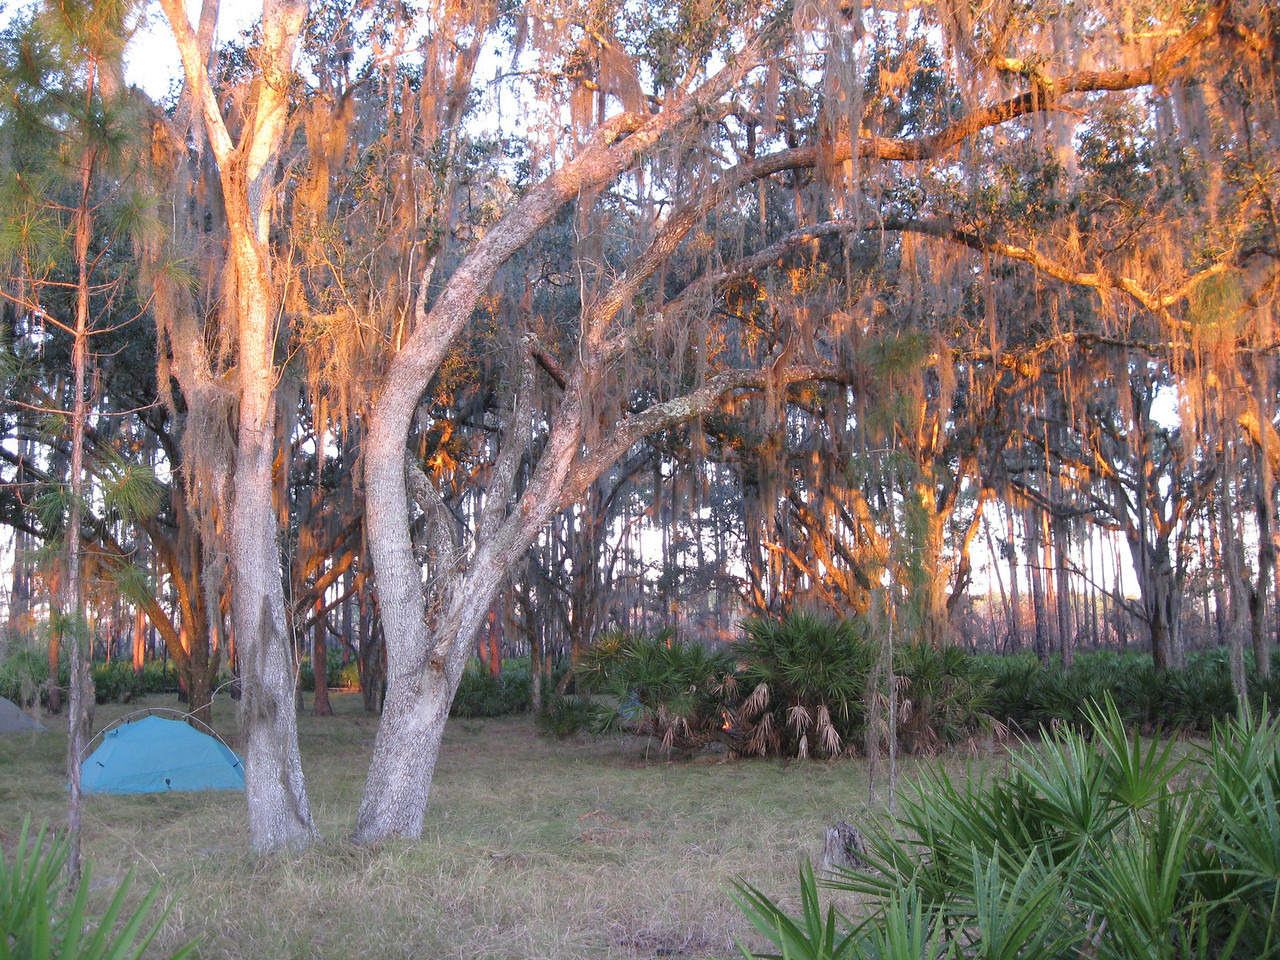 Golden Light on Campsite<br /> Photo by Esther Muram